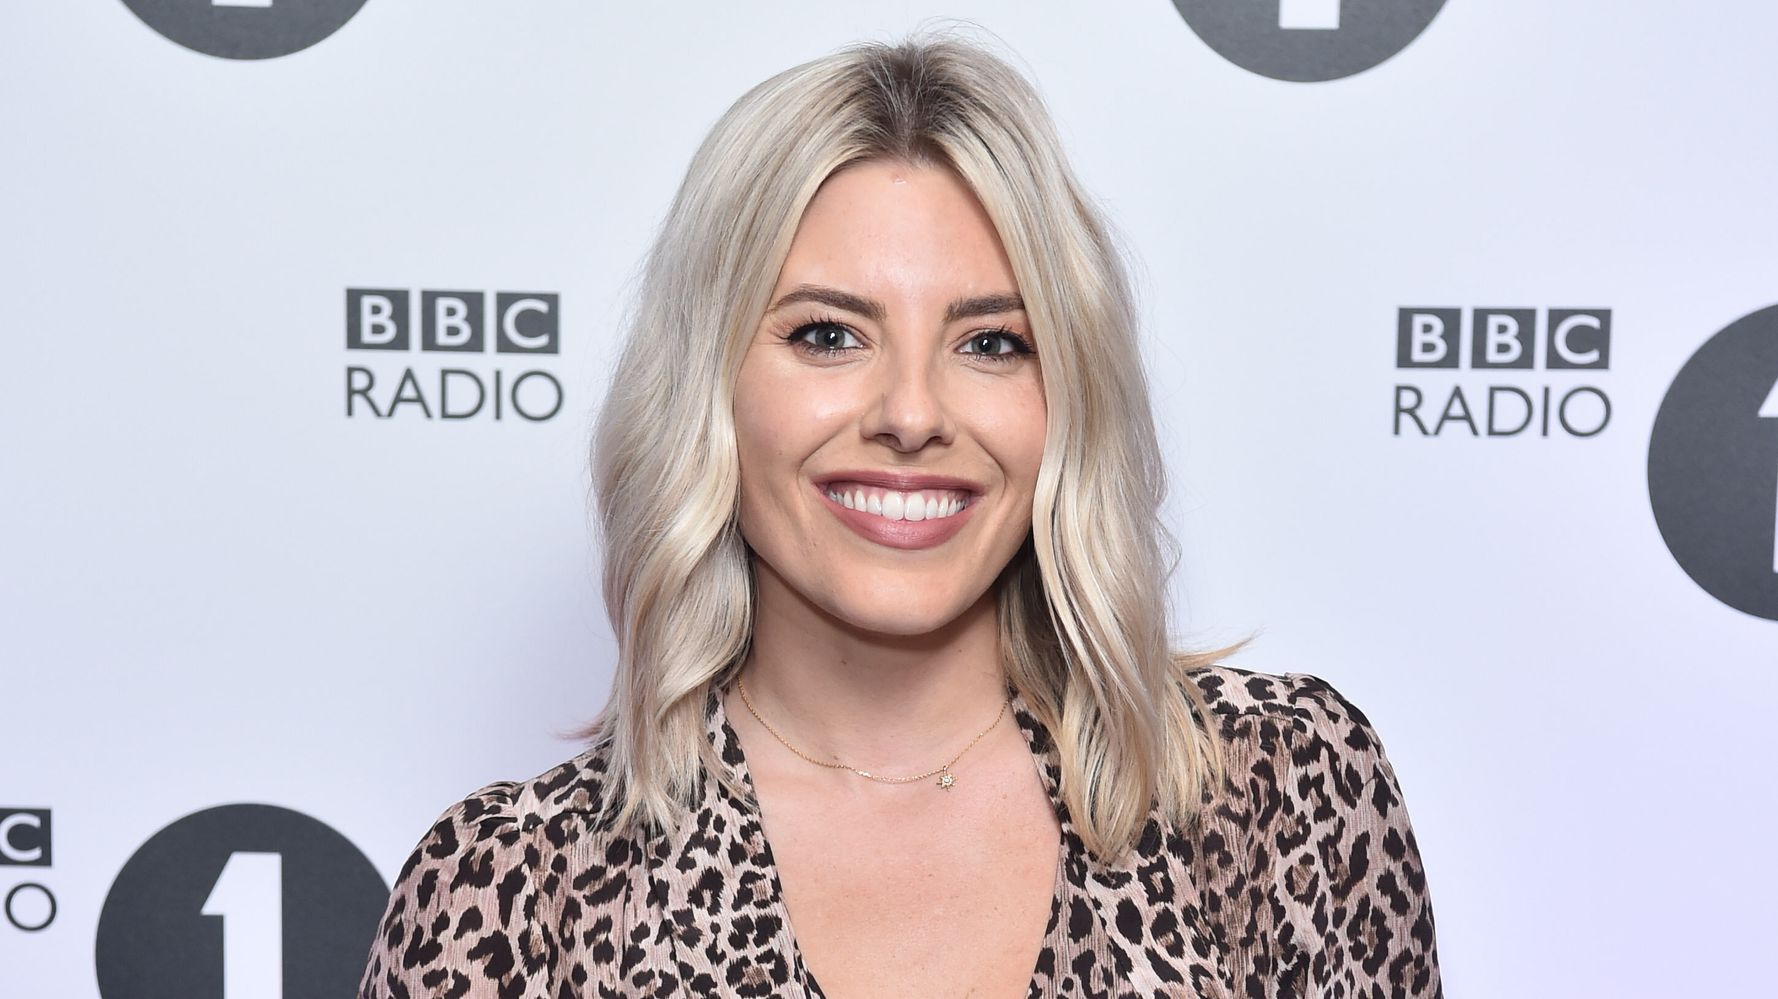 Mollie King: 'I Felt Lost After The Saturdays, But Strictly Put Me Back On My Feet'